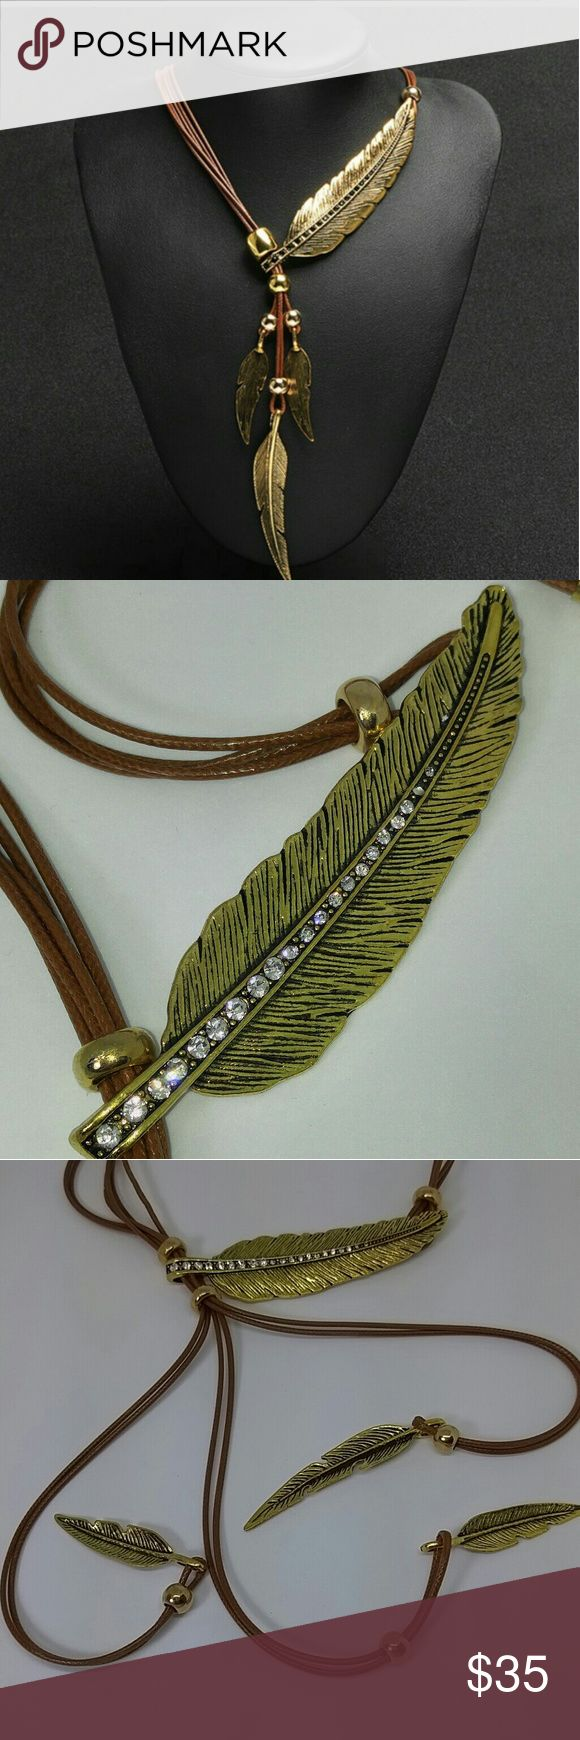 Gold feather choker/expandable Leather necklace Beautiful choker/expandable gold tone feather leather necklace, new Jewelry Necklaces